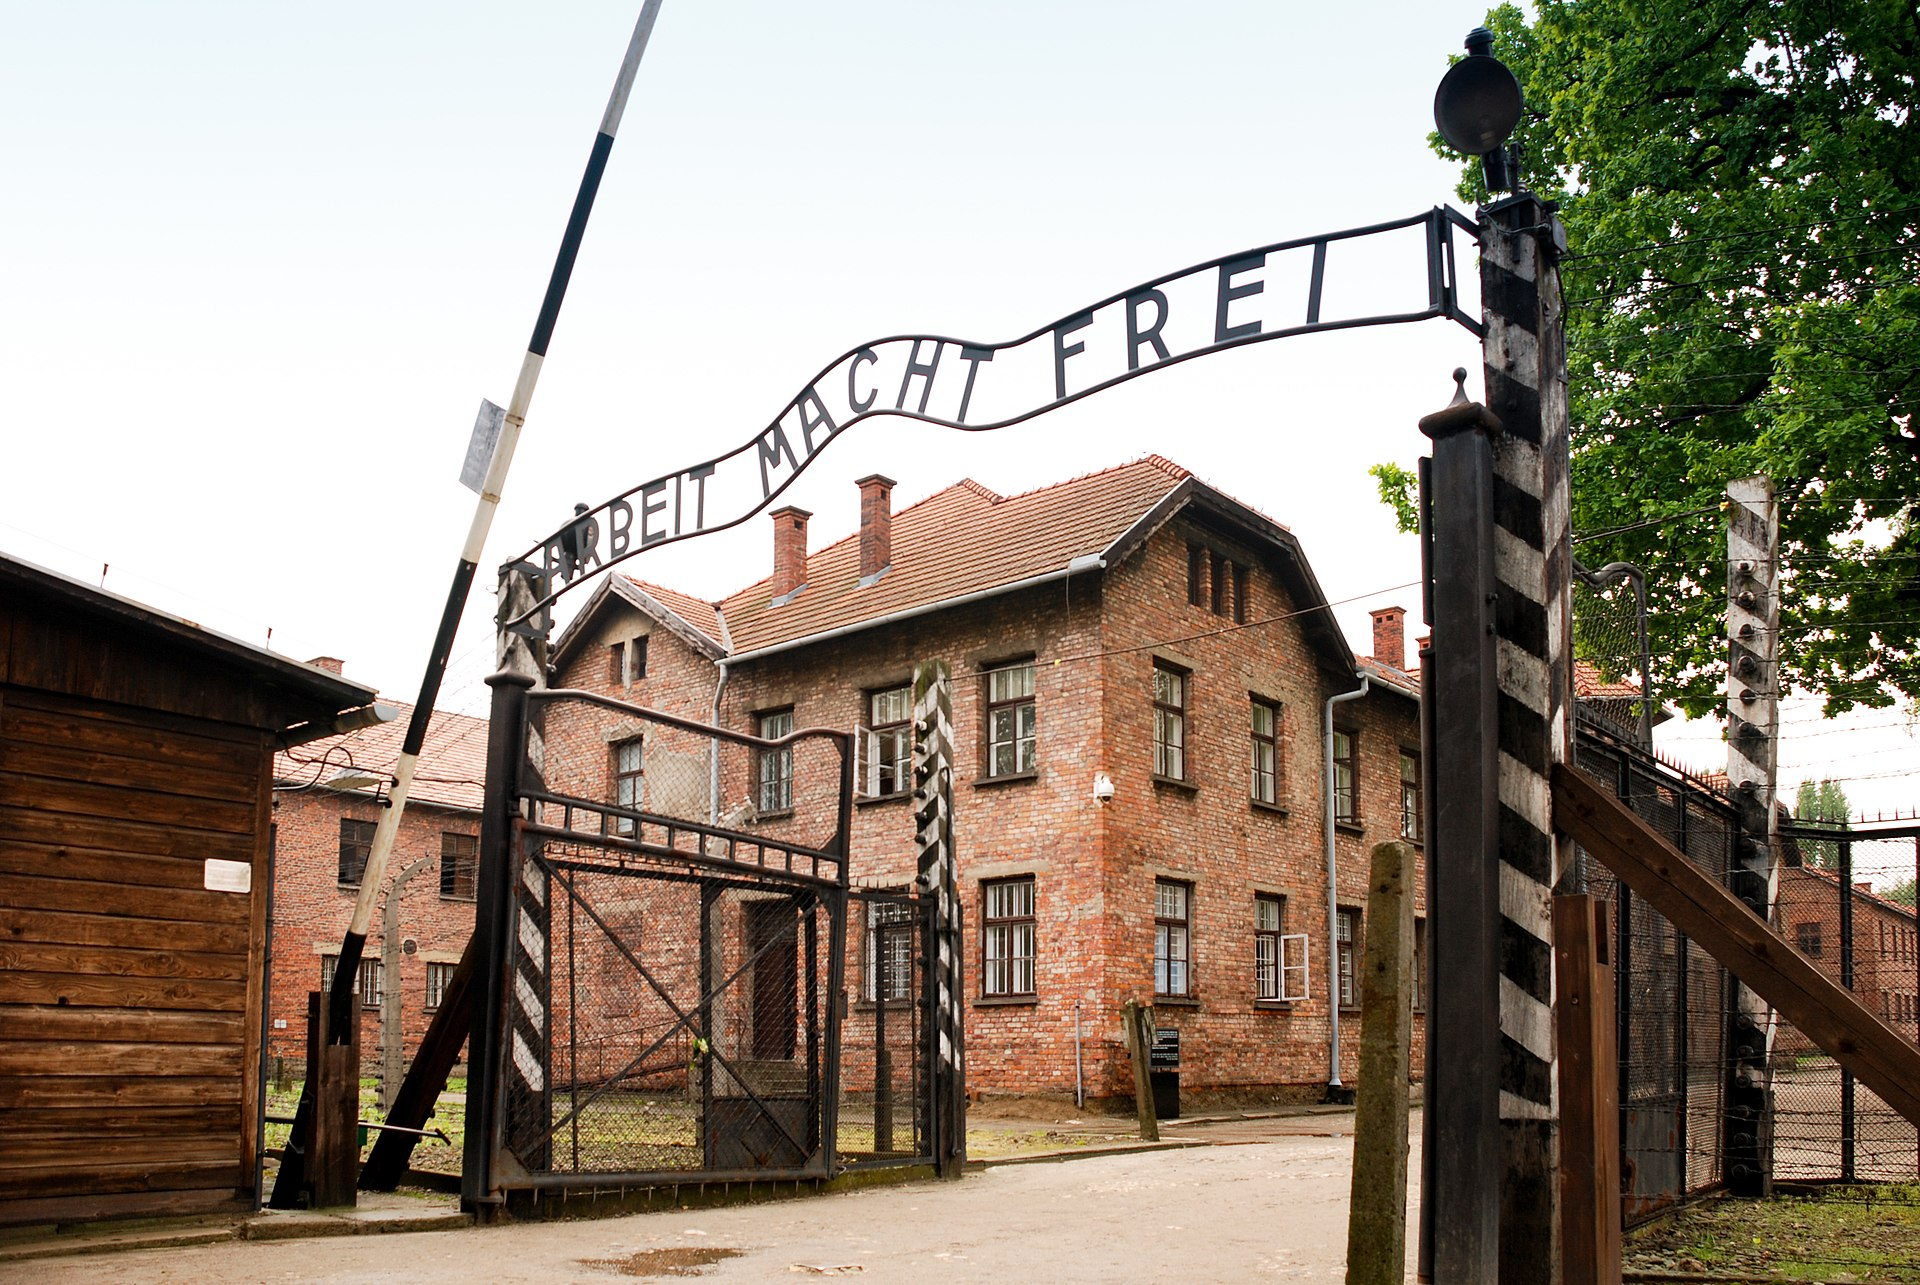 German concentration camp, Auschwitz I (the main camp), Poland. Date: 22 May 2010. Author: xiquinhosilva. (CC BY 2.0). Source: Wikimedia Commons